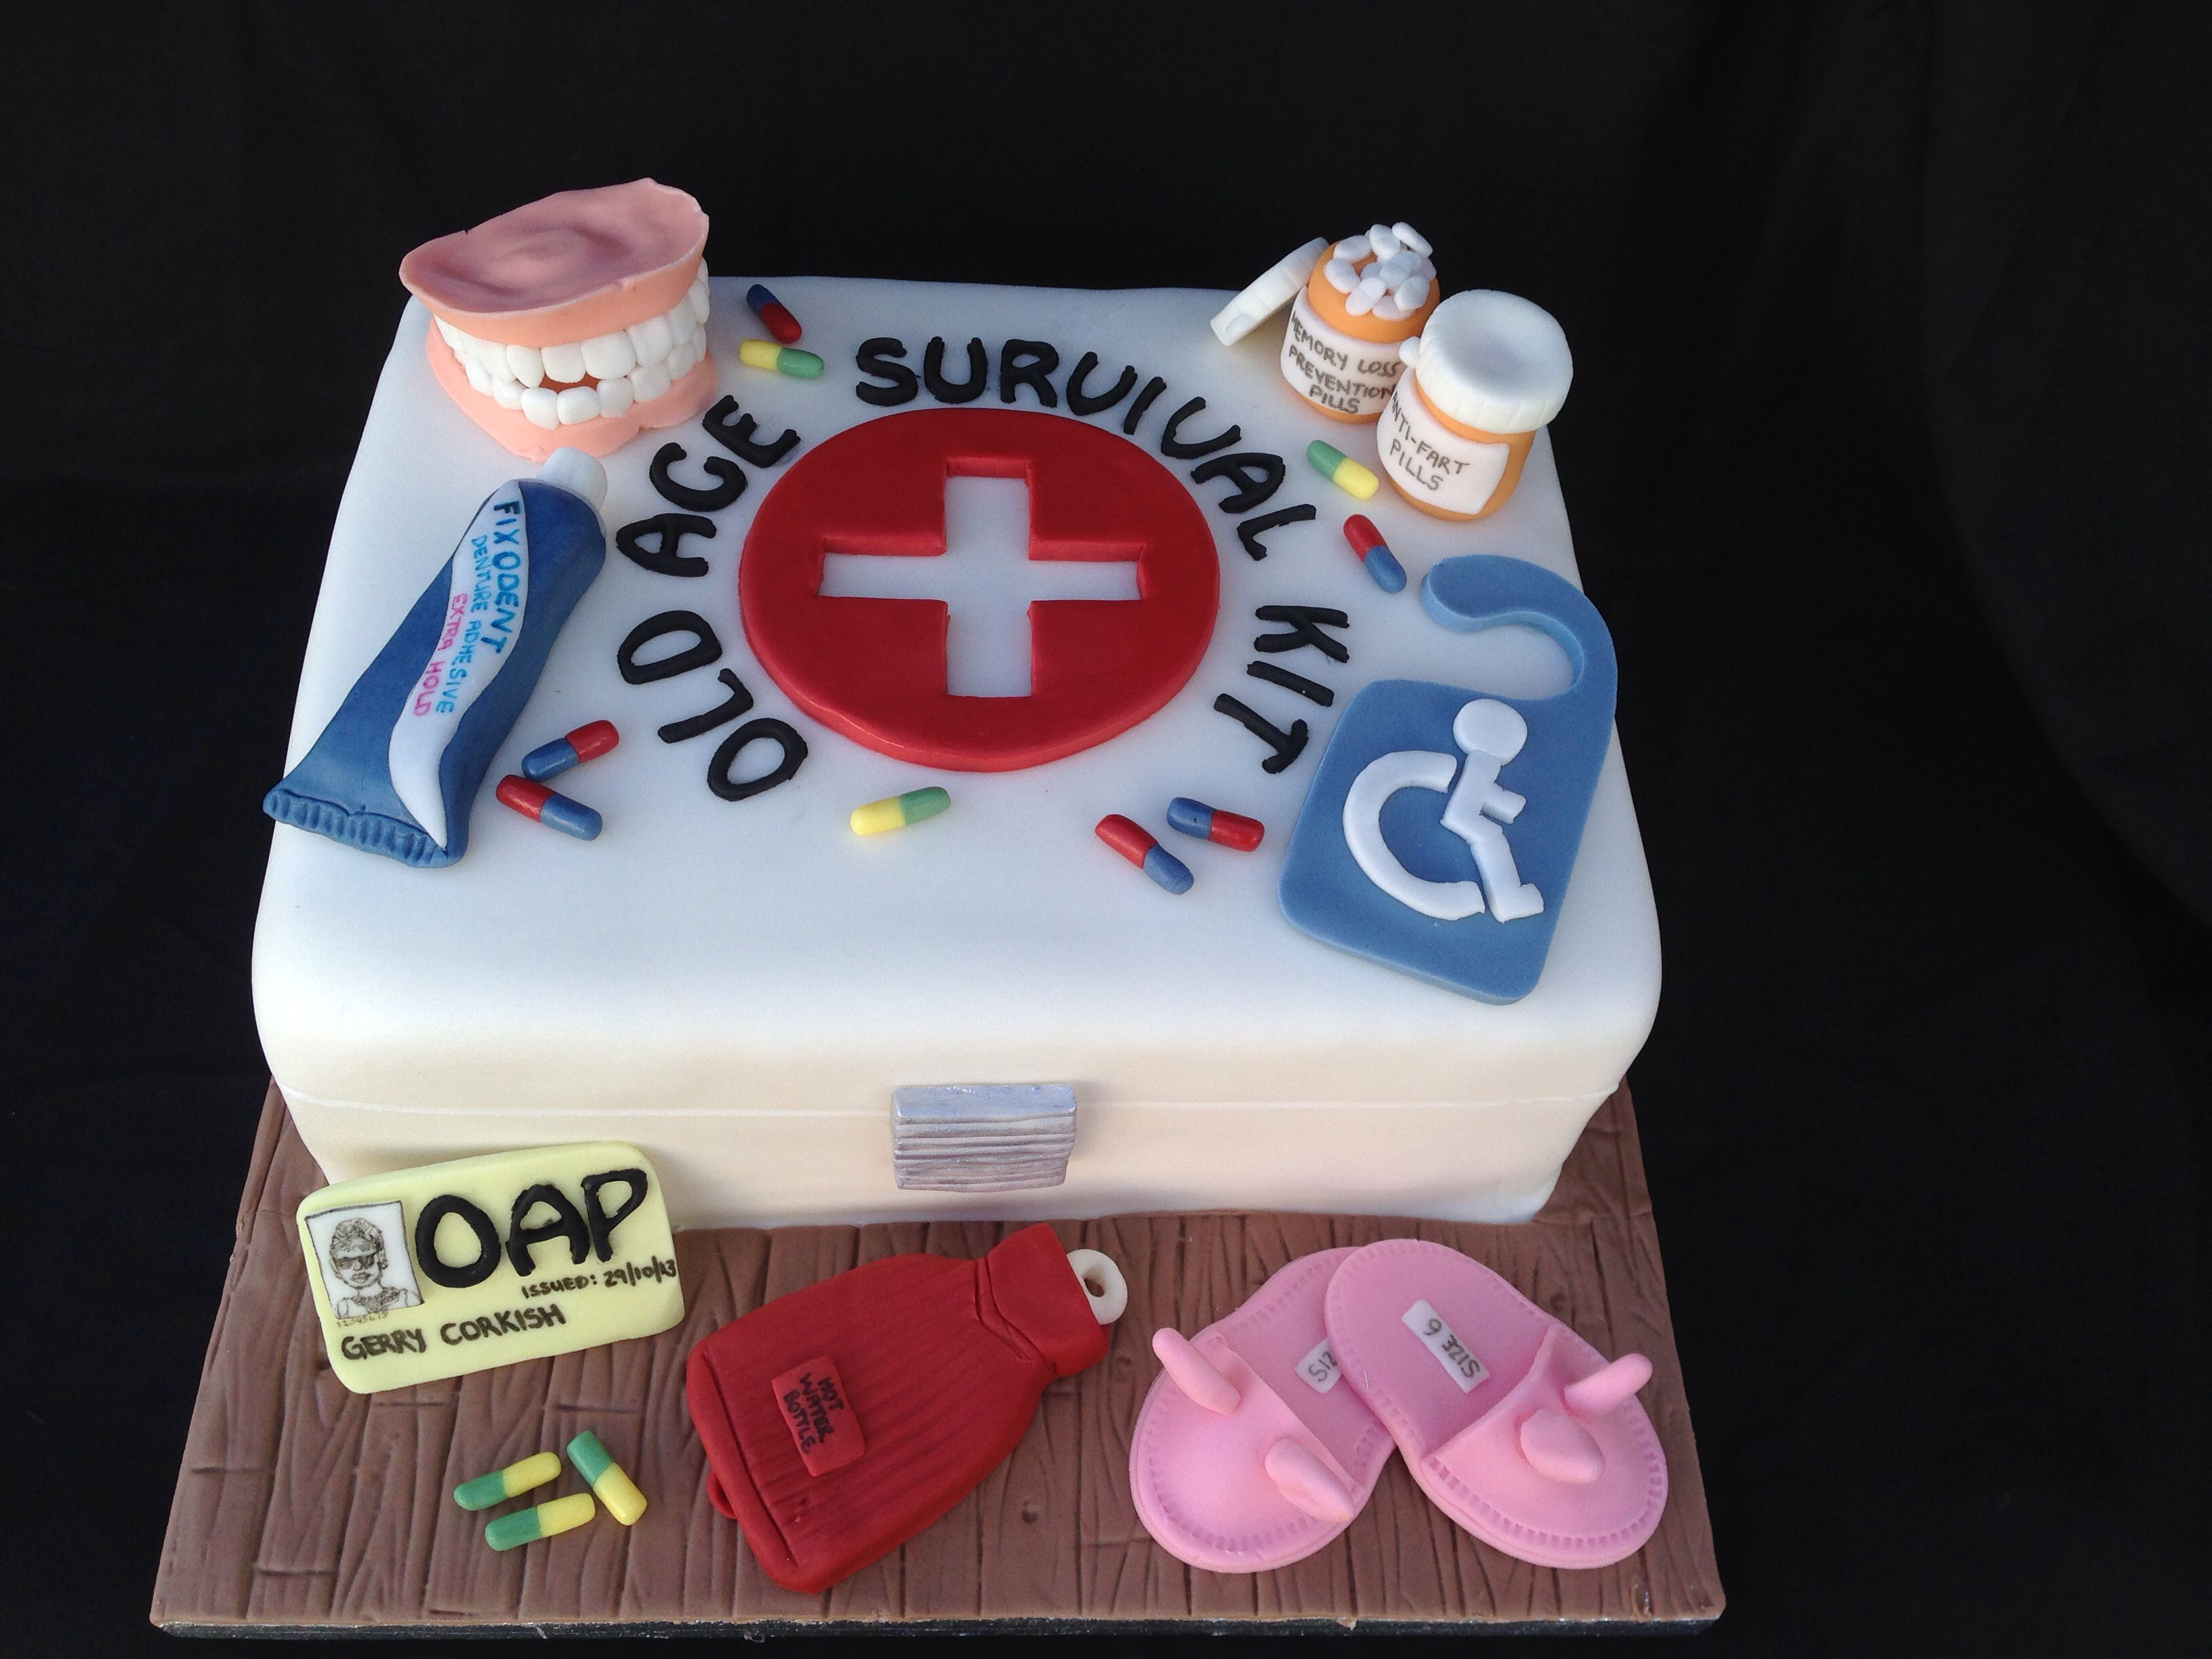 Old Age Pensioners Survival Kit - birthday cake. Fondant dentures, fondant bunny slippers and fondant survival box all hand crafted.